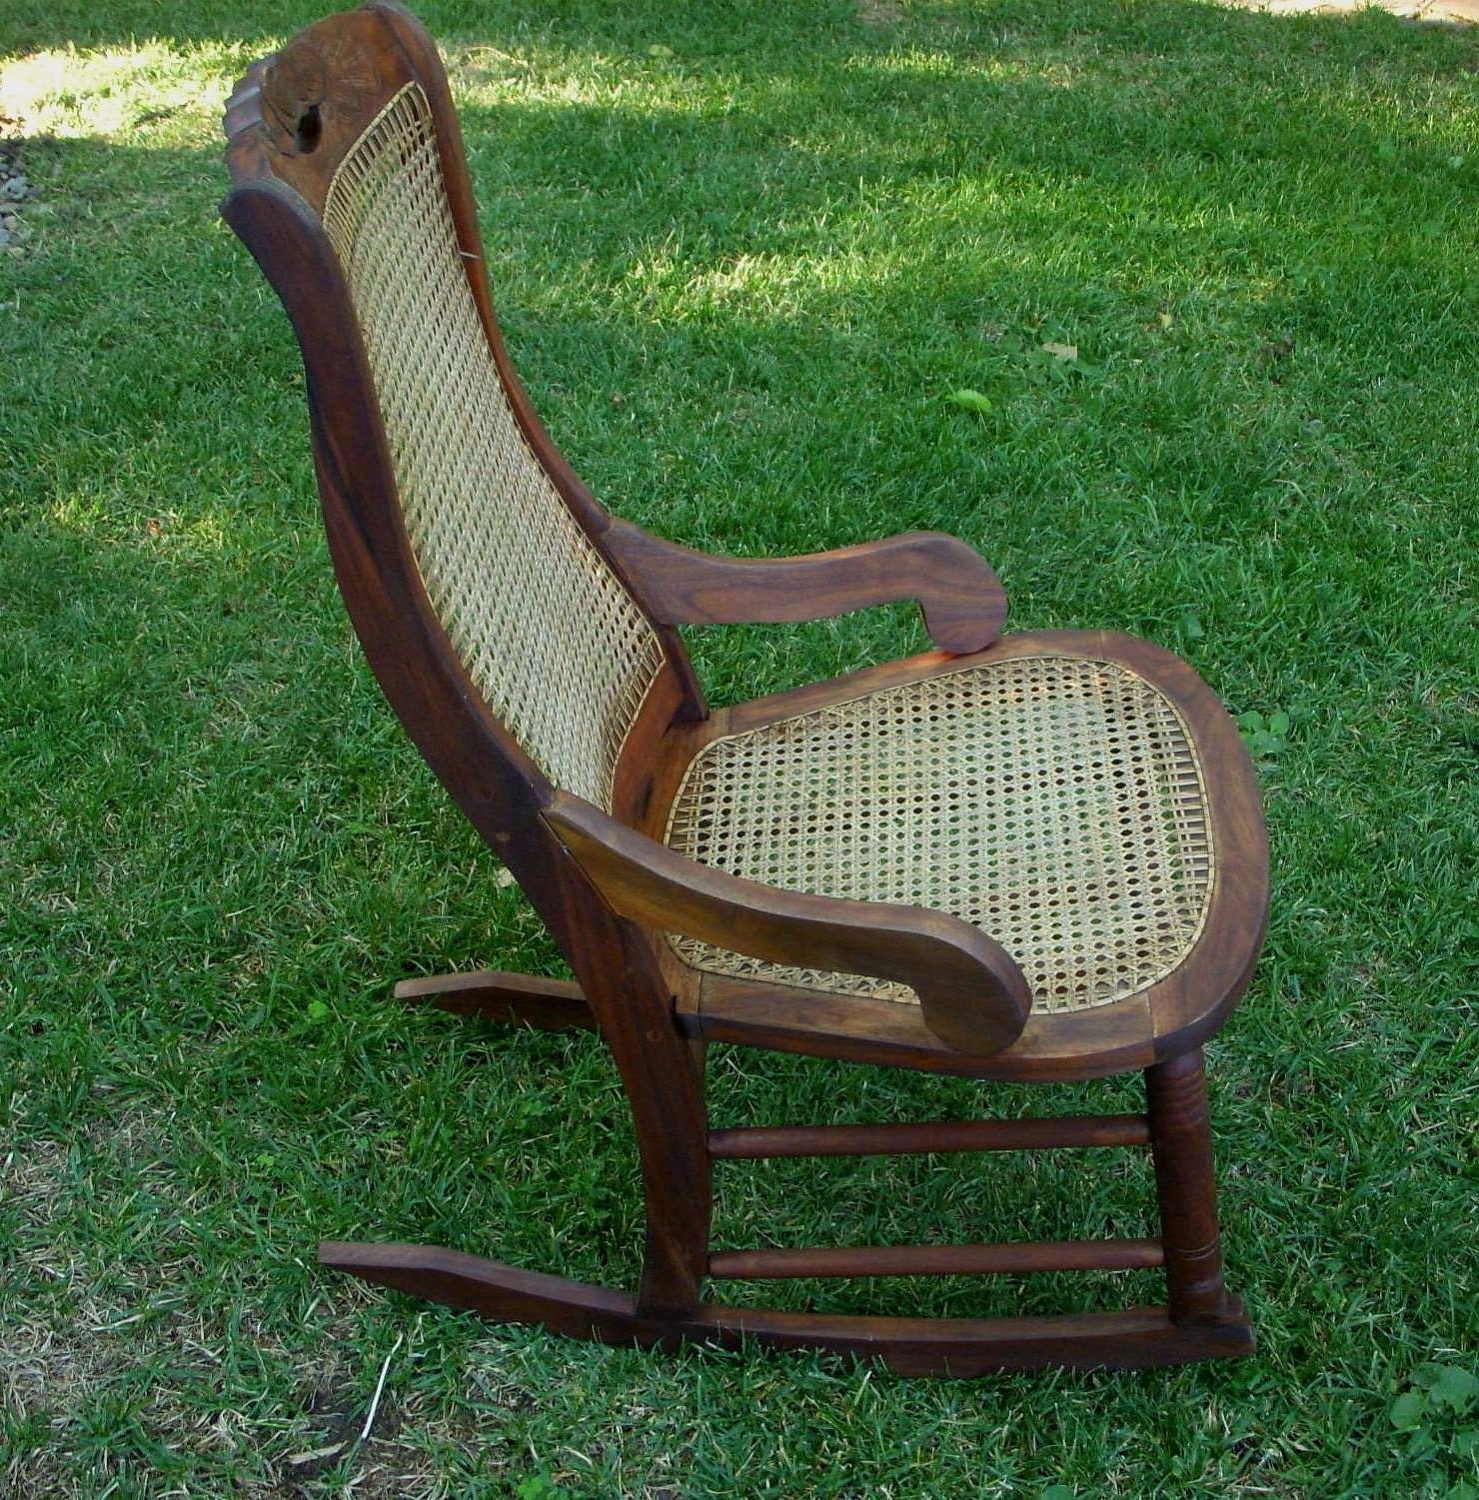 Vintage Wicker Rocking Chairs Intended For Most Recent 20 New Antique Wicker Rocking Chair (Gallery 20 of 20)